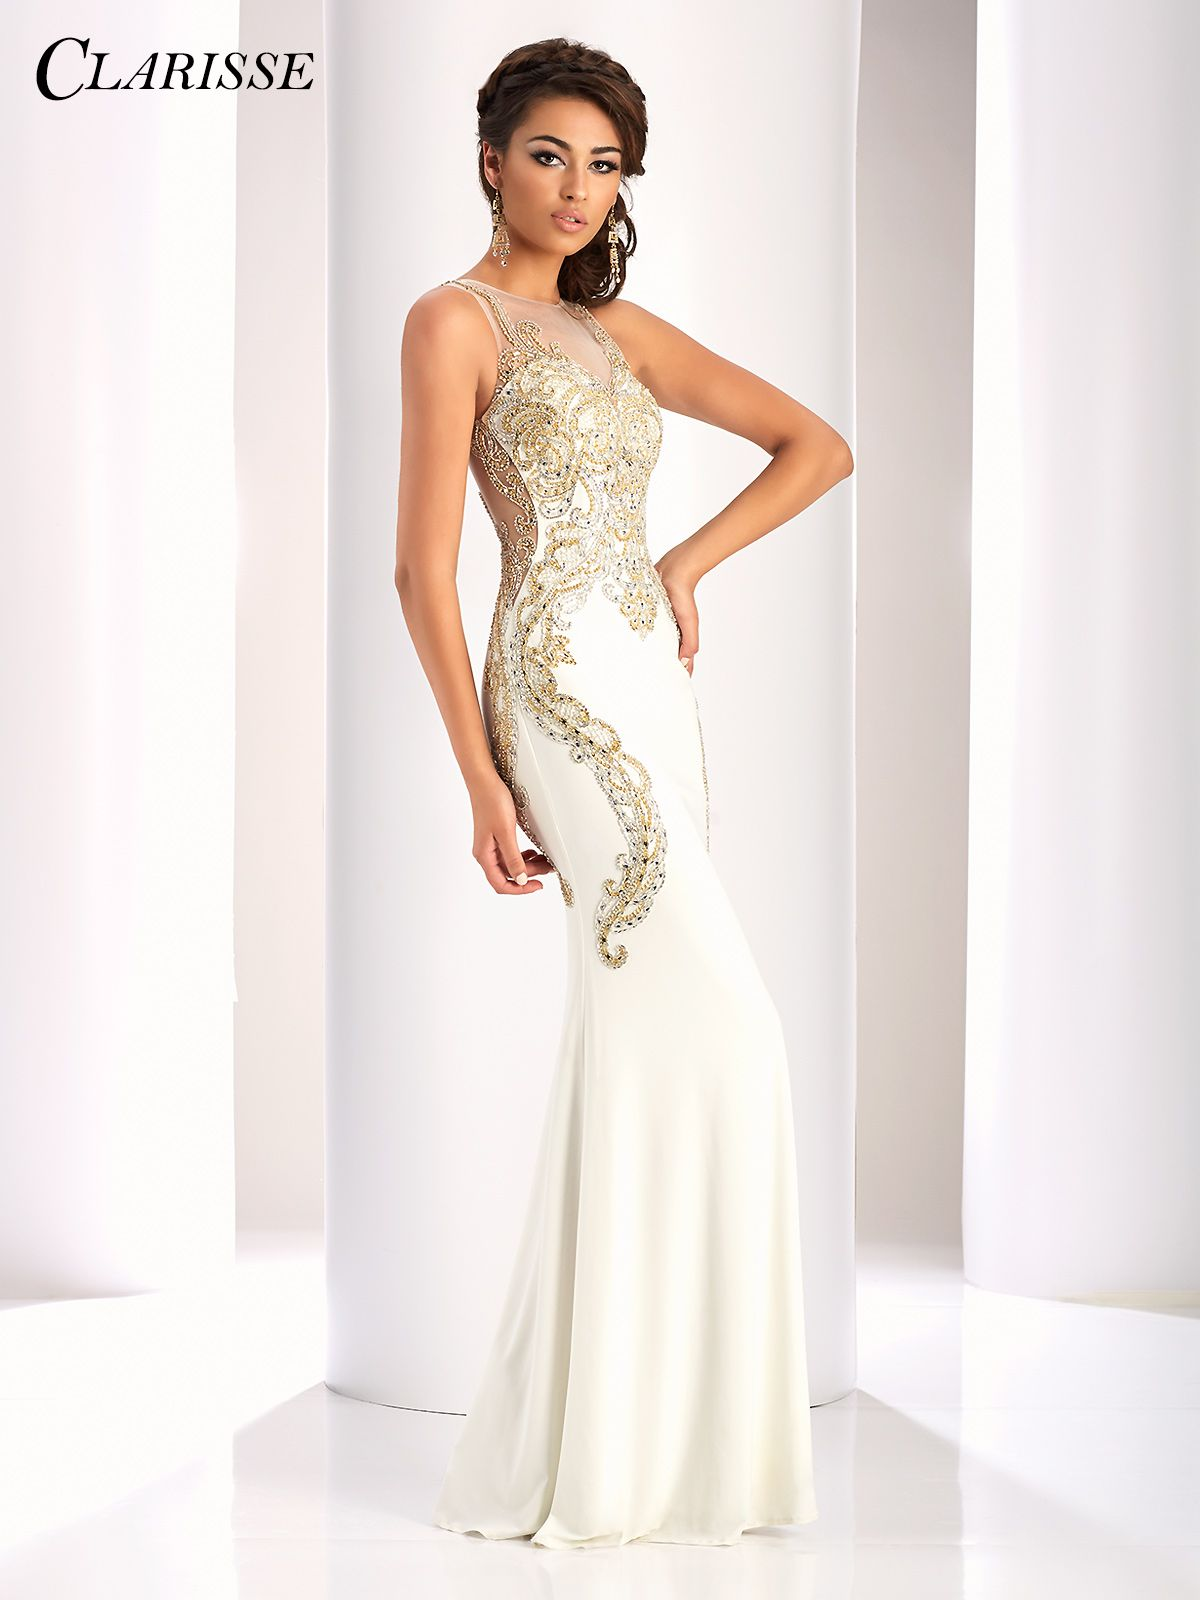 d7eba522c4f Clarisse Ivory and Gold Prom Dress 4853. Elegant sparkly prom dress with a  tight fitted skirt